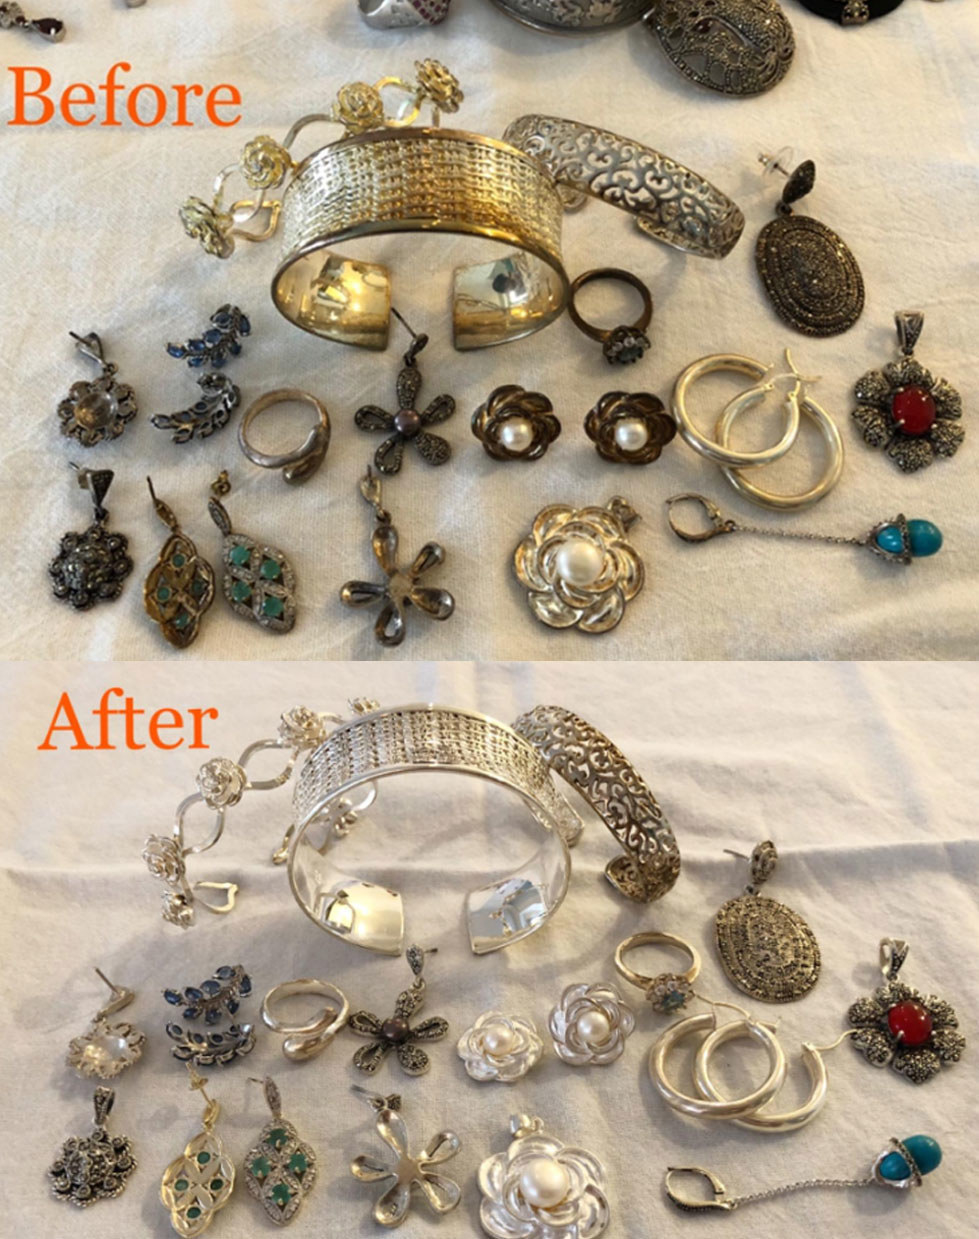 before and after of a reviewer's jewelry collection cleaned